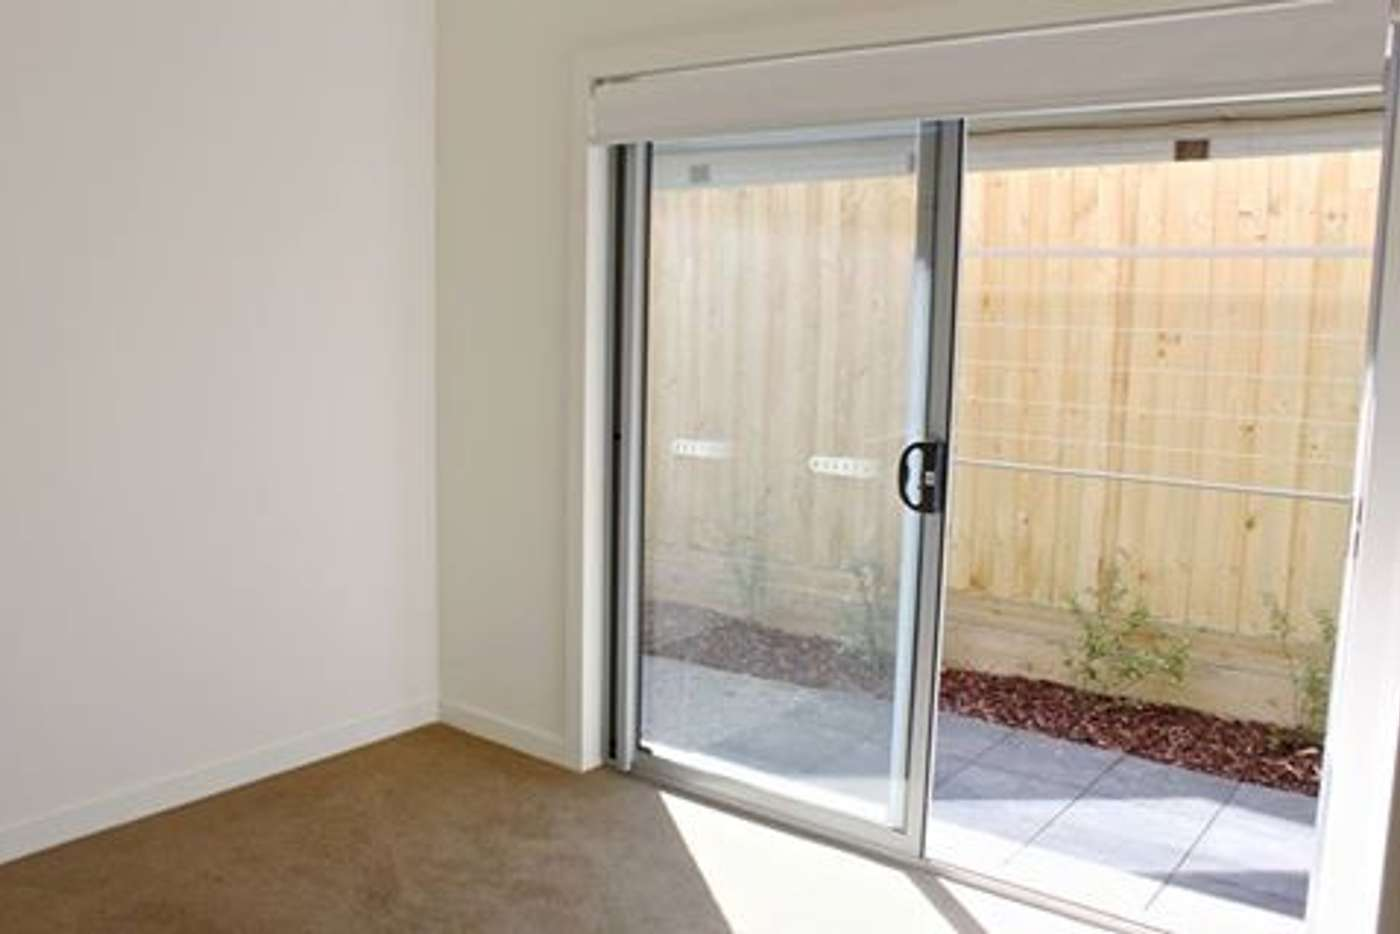 Seventh view of Homely townhouse listing, 9/6 Jean Street, Cheltenham VIC 3192